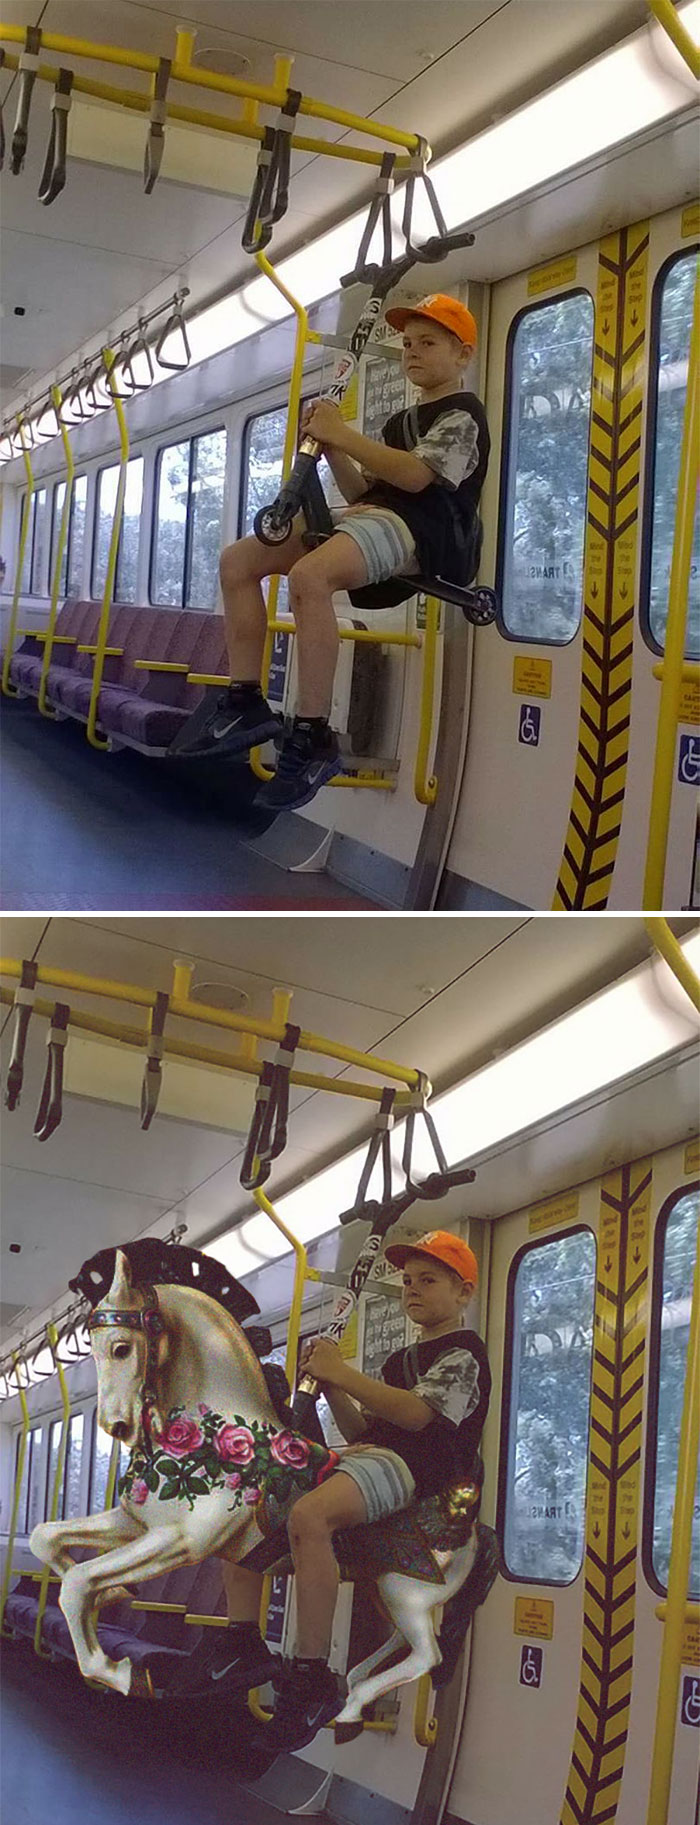 This Kid Riding His Scooter On The Train